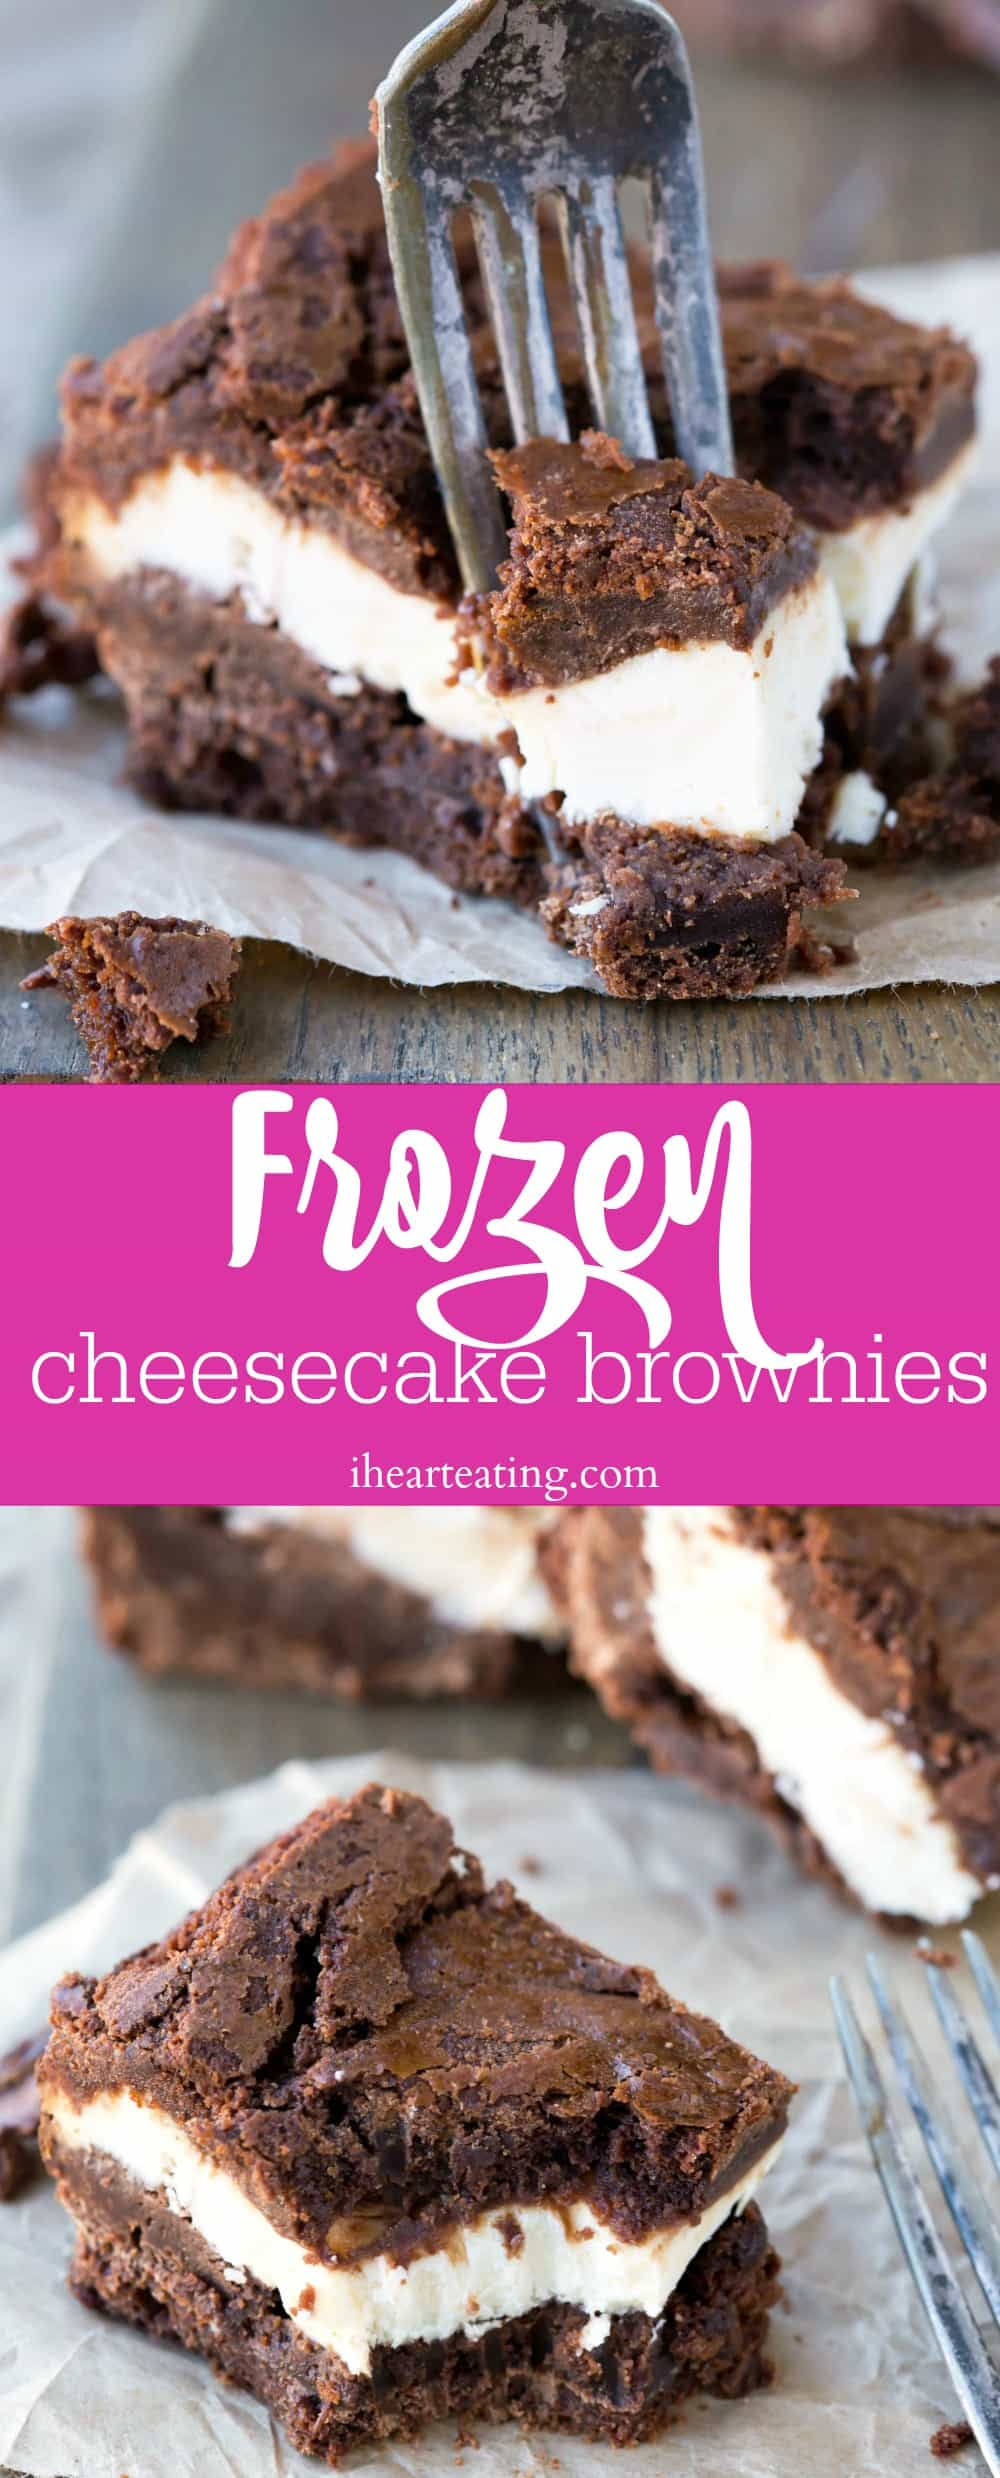 Frozen Cheesecake Brownies